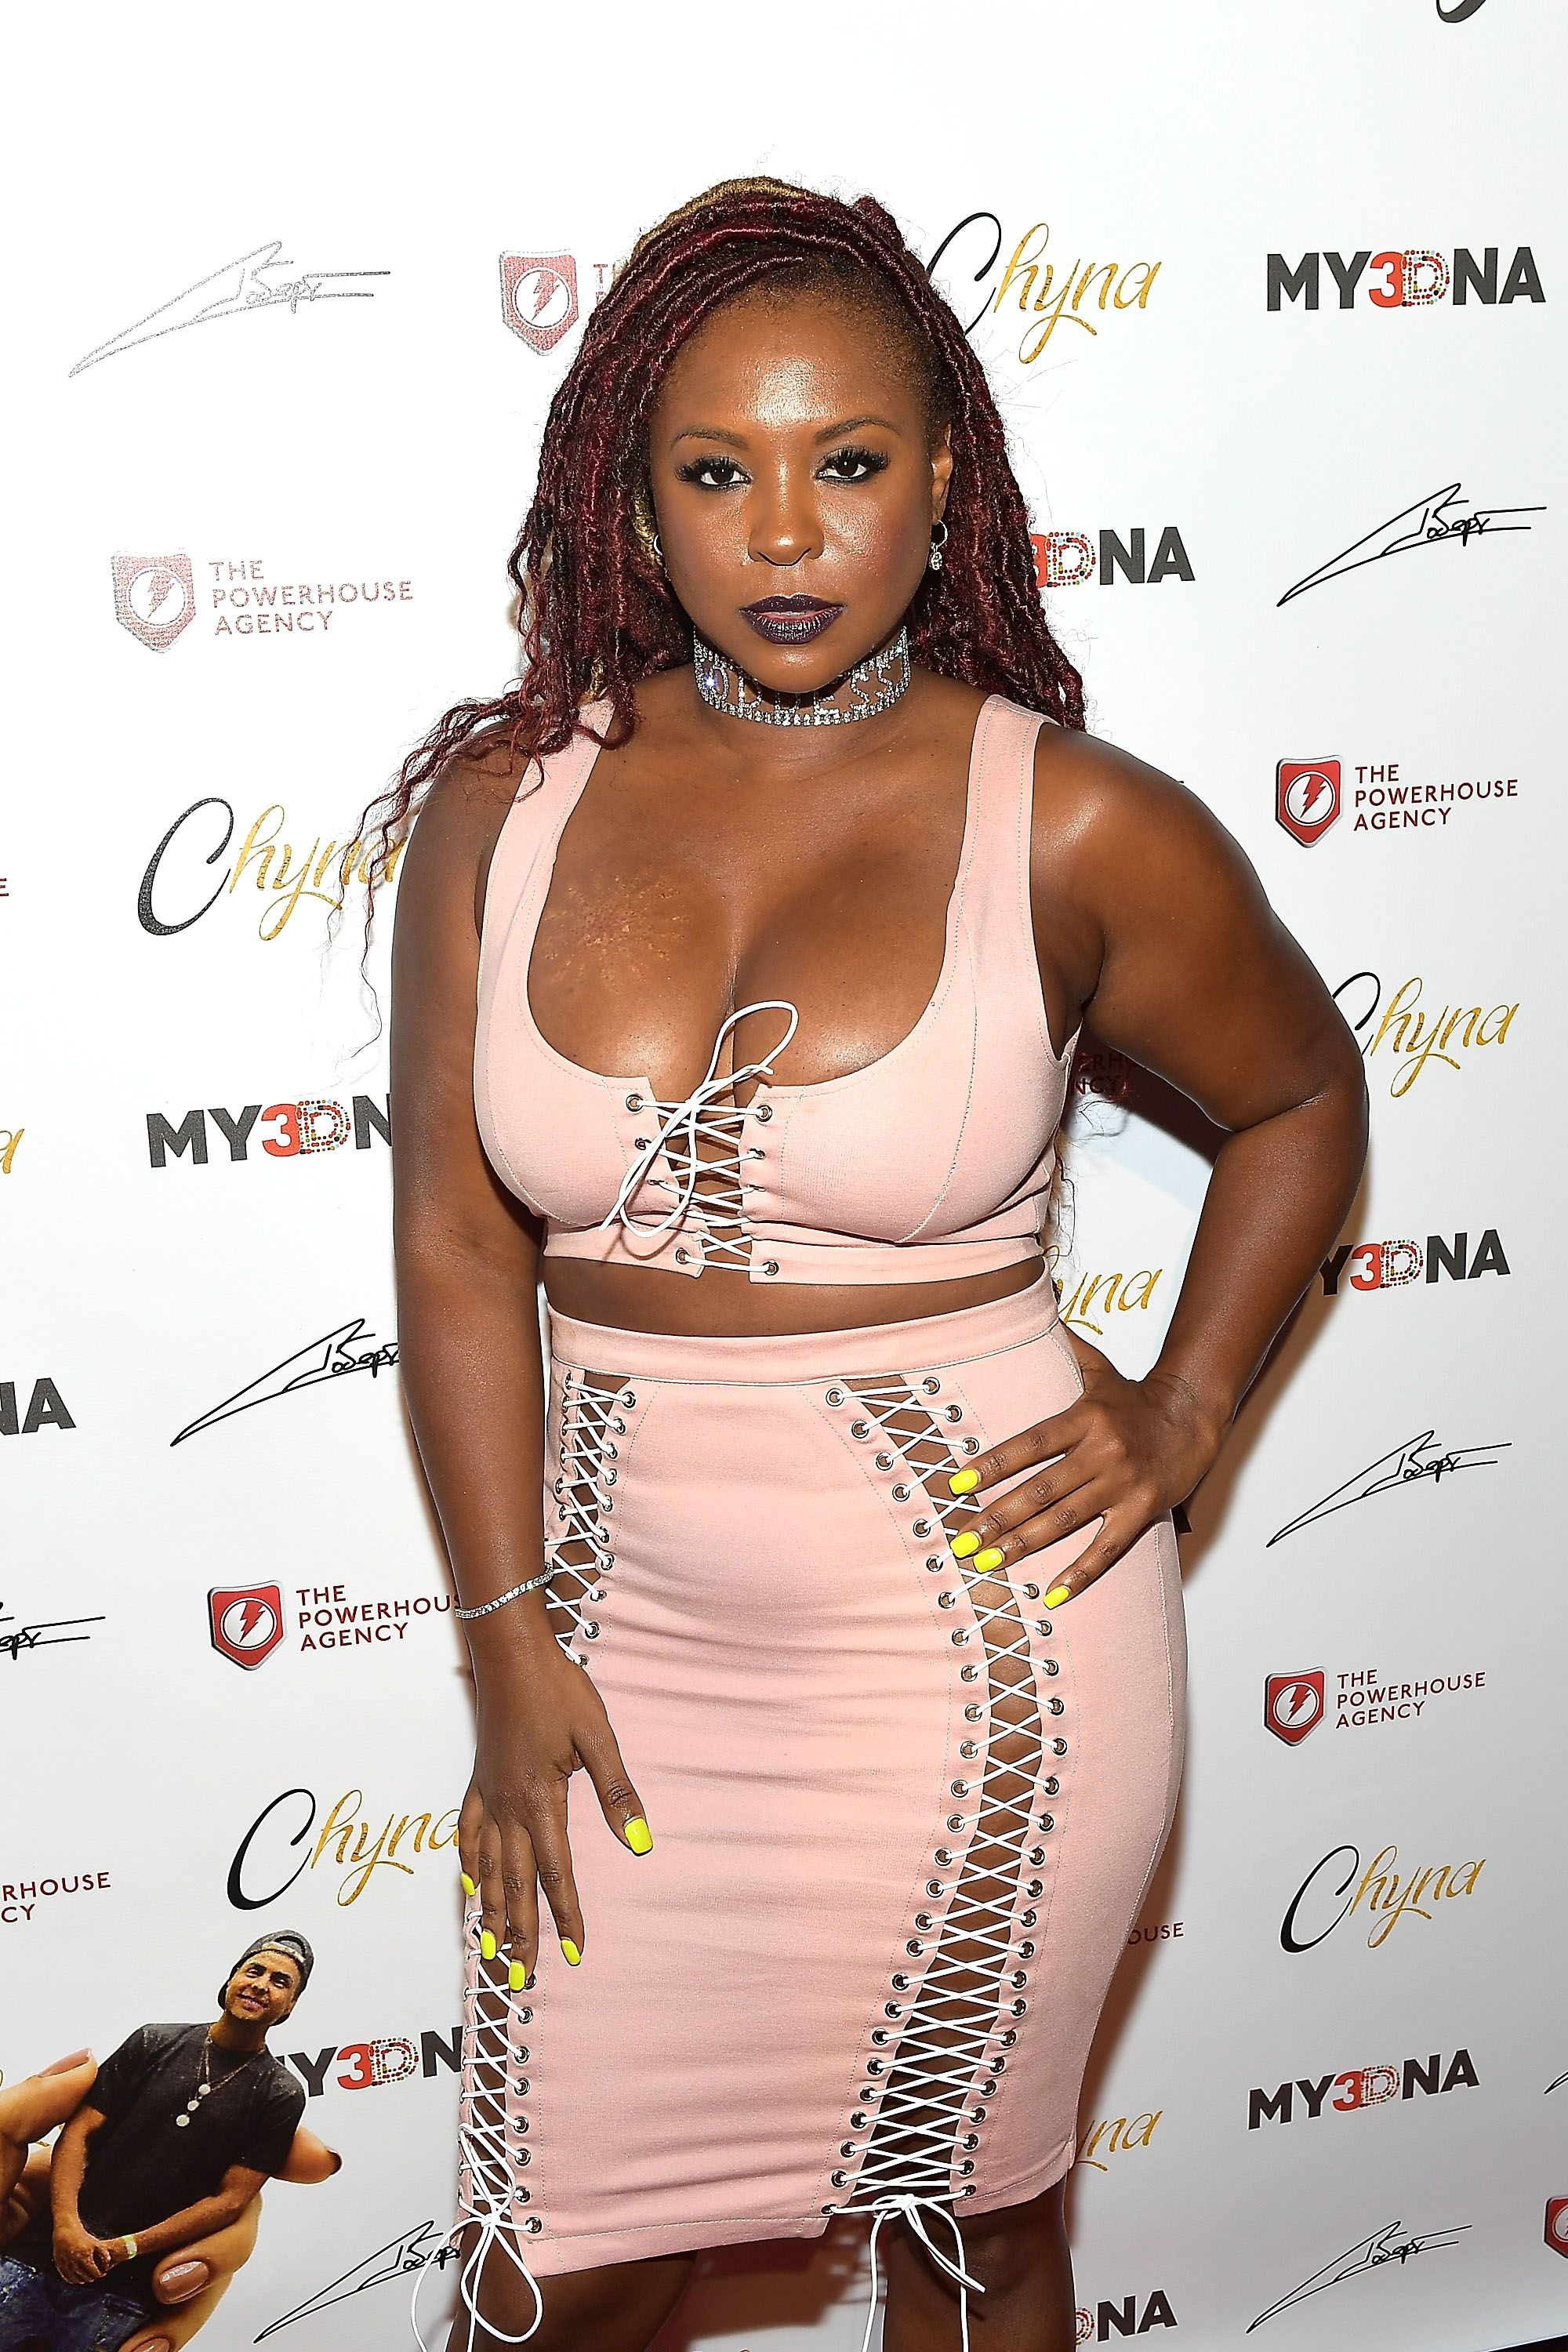 Torrei Hart makes an appearance at the launch of Blac Chyna's figurine dolls in LA, California on August 17, 2017.   Photo: Getty Images/Matt Winkelmeyer